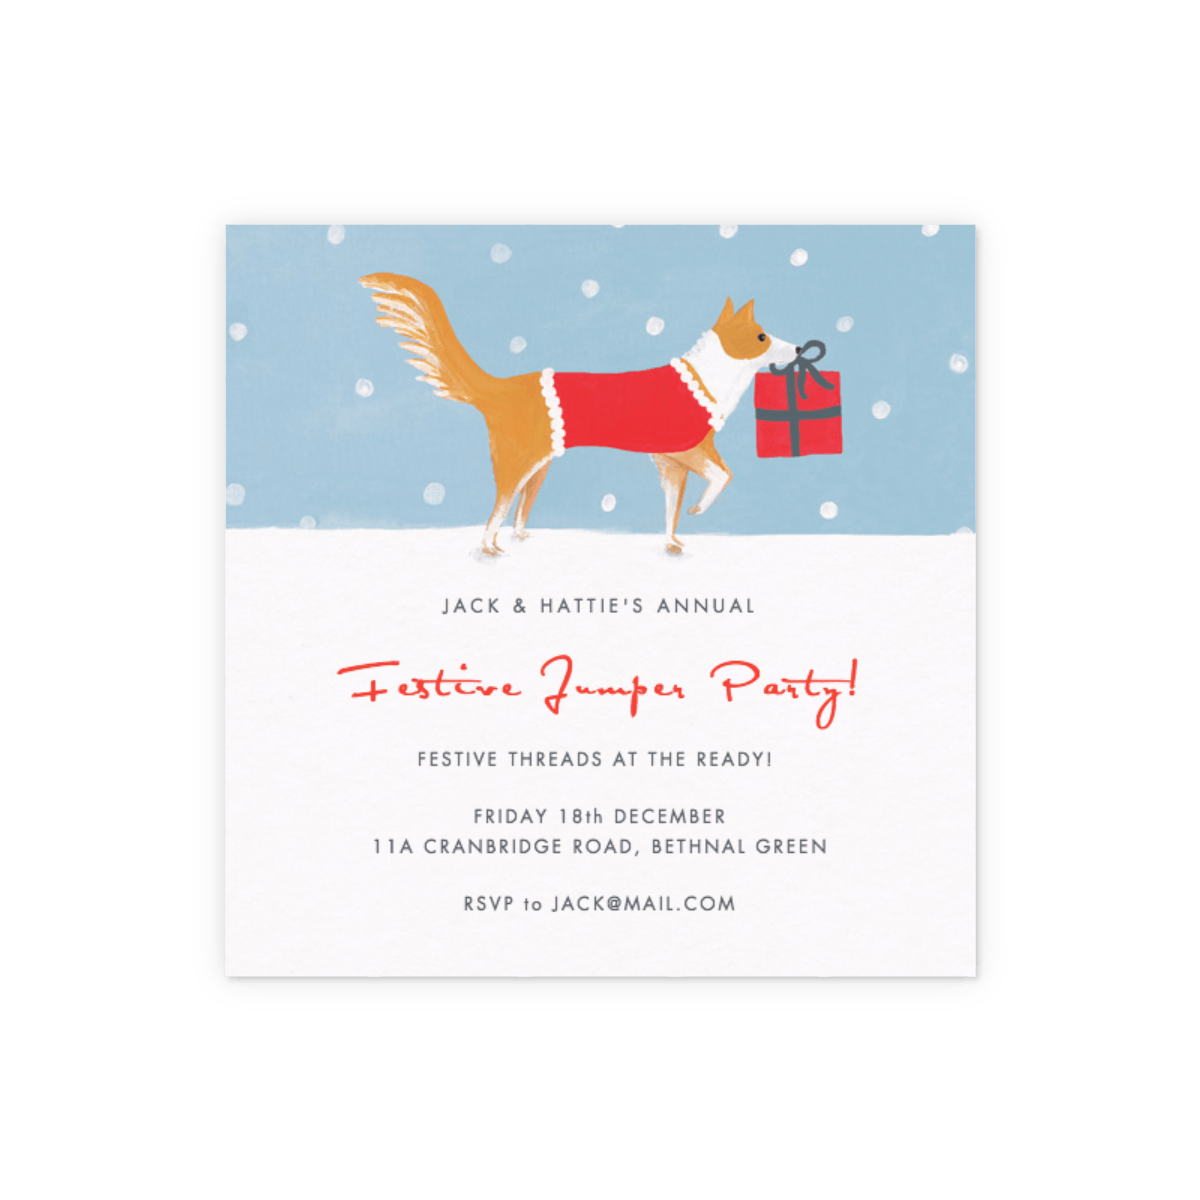 Https%3a%2f%2fwww.papier.com%2fproduct image%2f25732%2f11%2fchristmas collie 6419 avant 1501583321.png?ixlib=rb 1.1